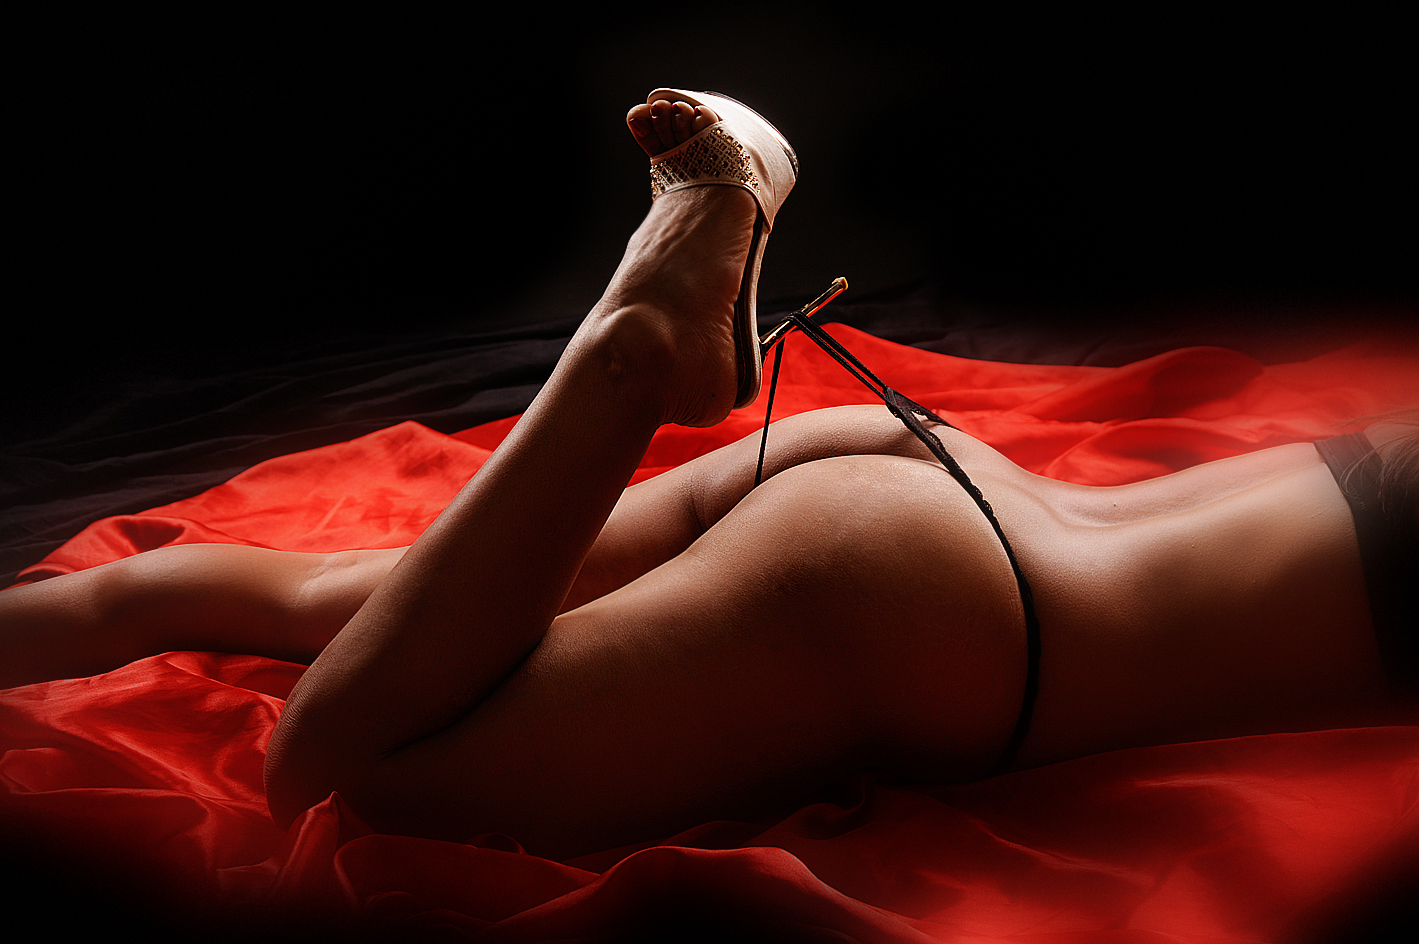 club 22 maintal erotik massage essen